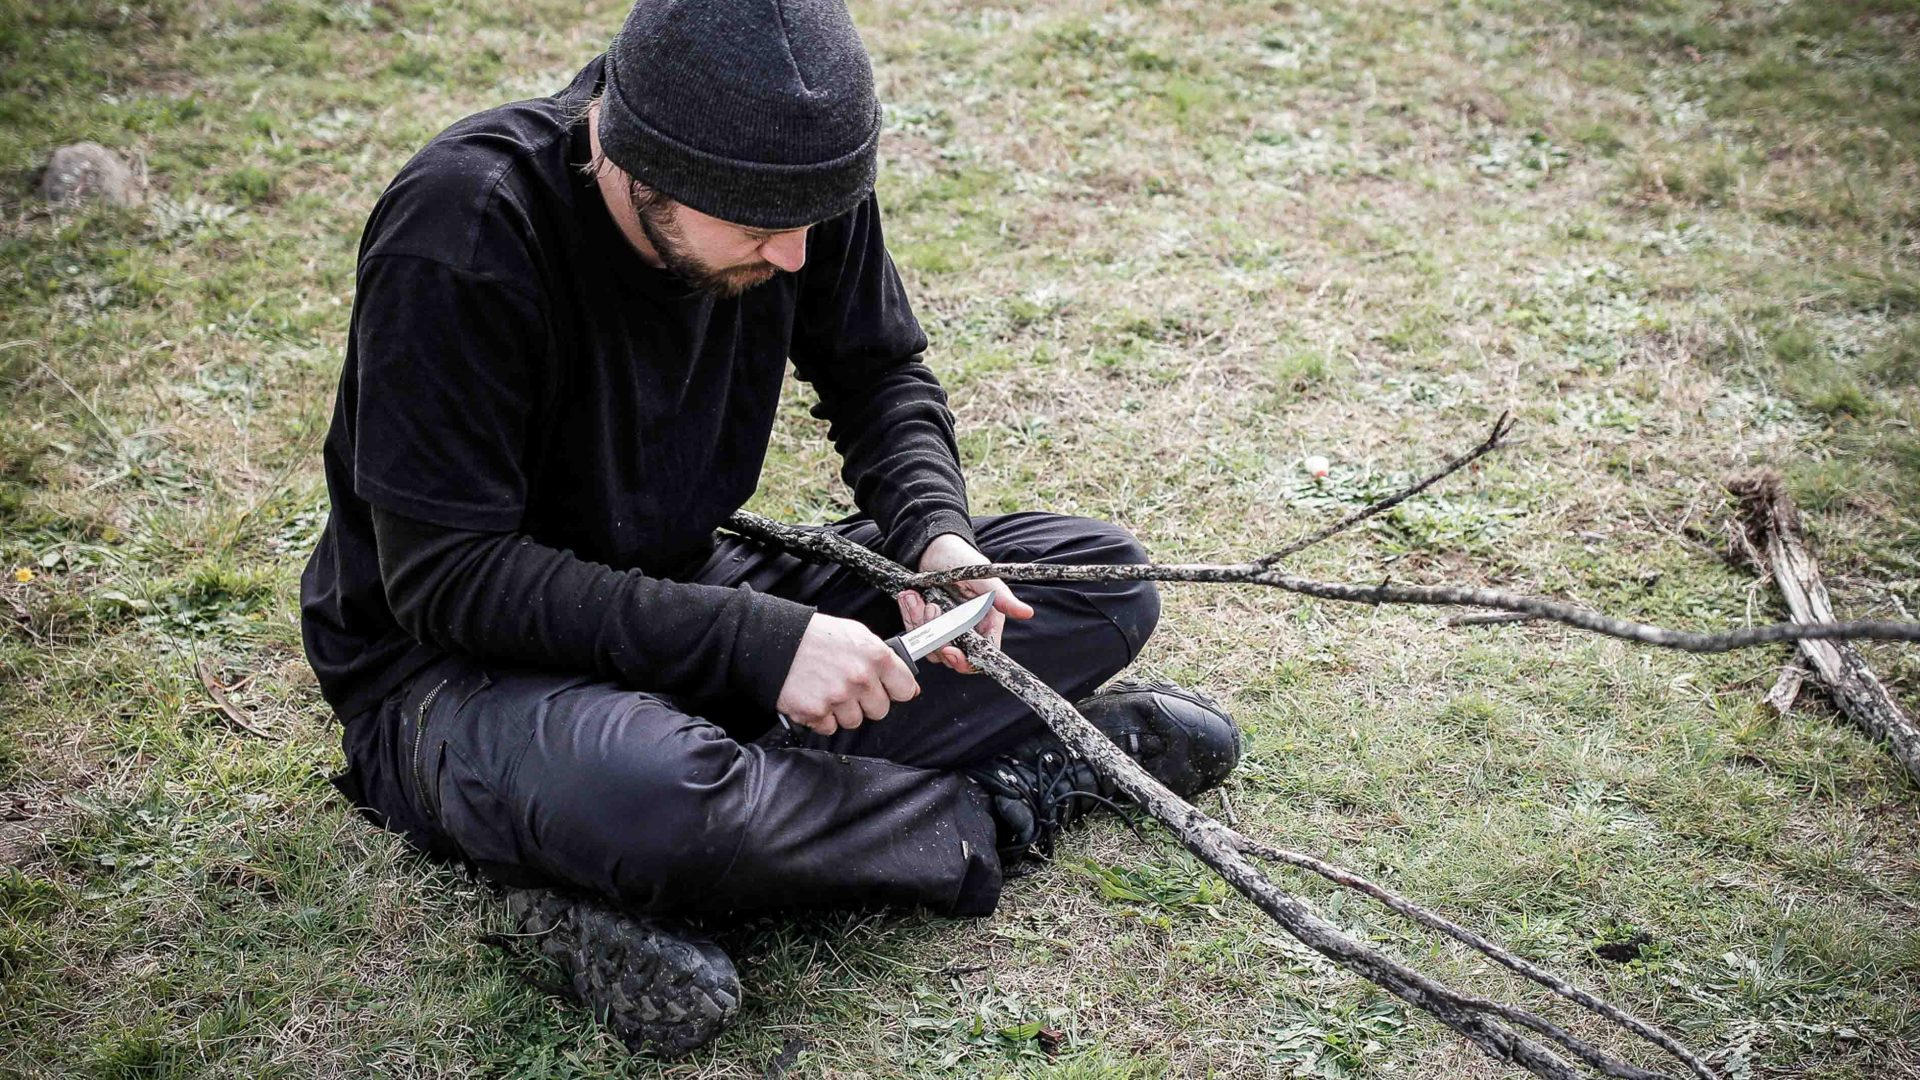 Making a bowline drill in Snowy River National Park, Victoria, Australia.